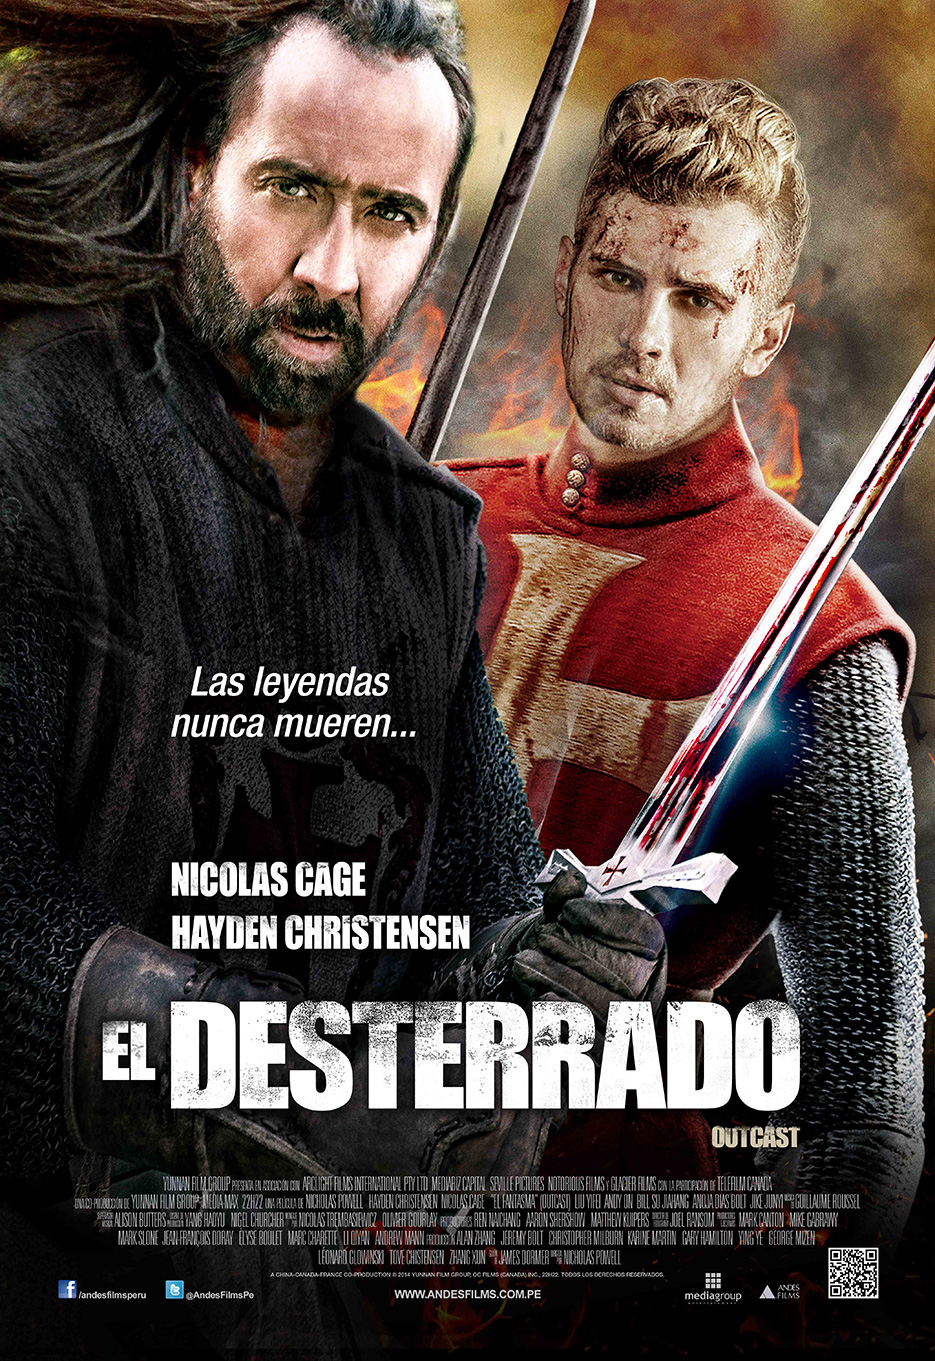 https://www.andesfilms.com.pe/el-desterrado/